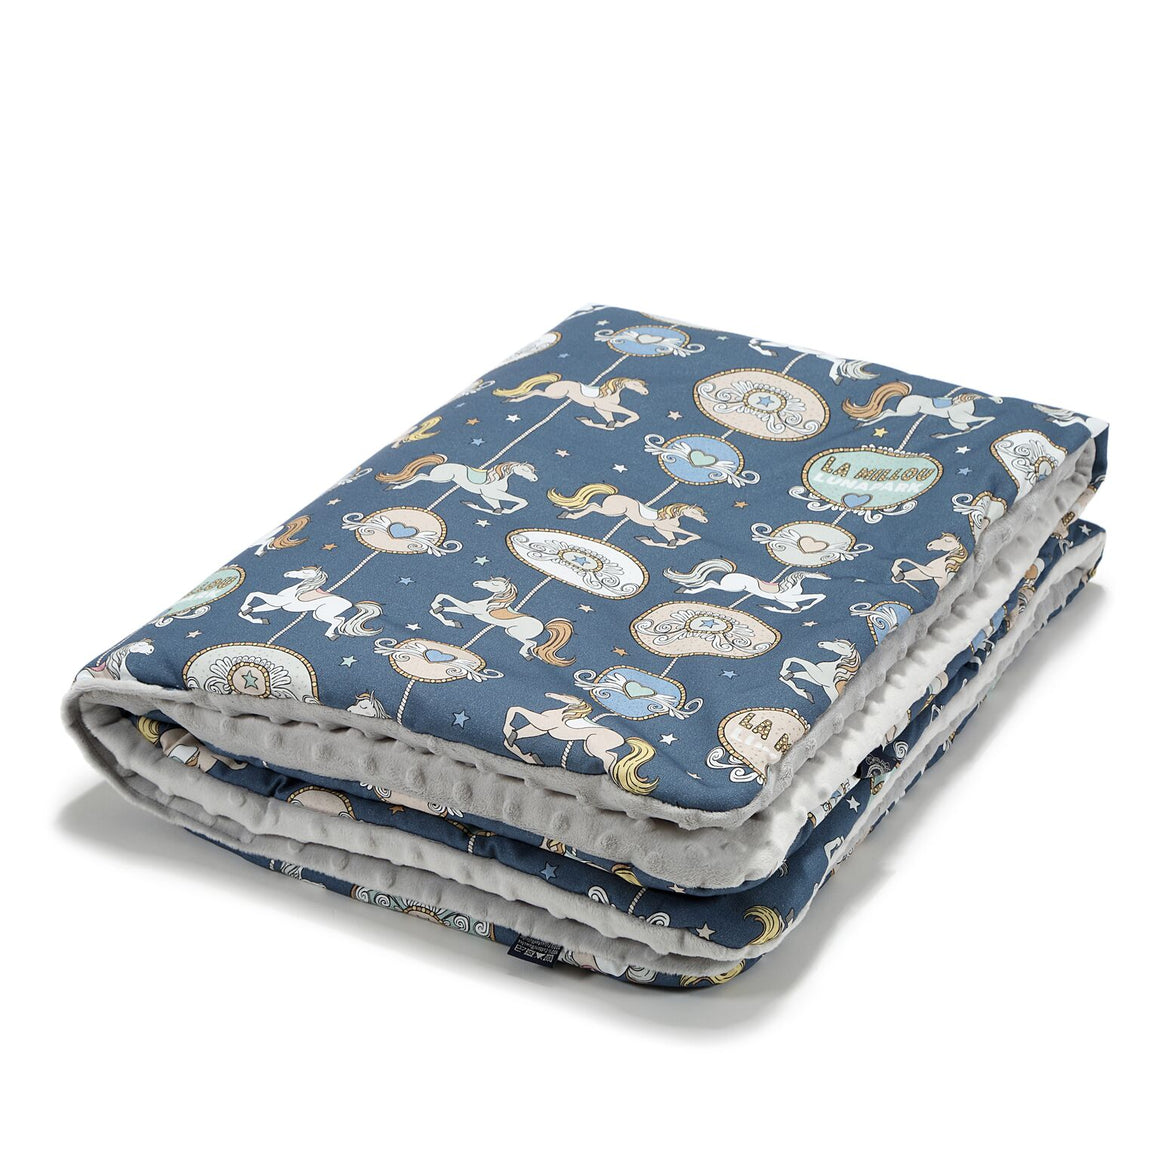 MEDIUM BLANKET peitto - Lunapark By Night | Light Grey